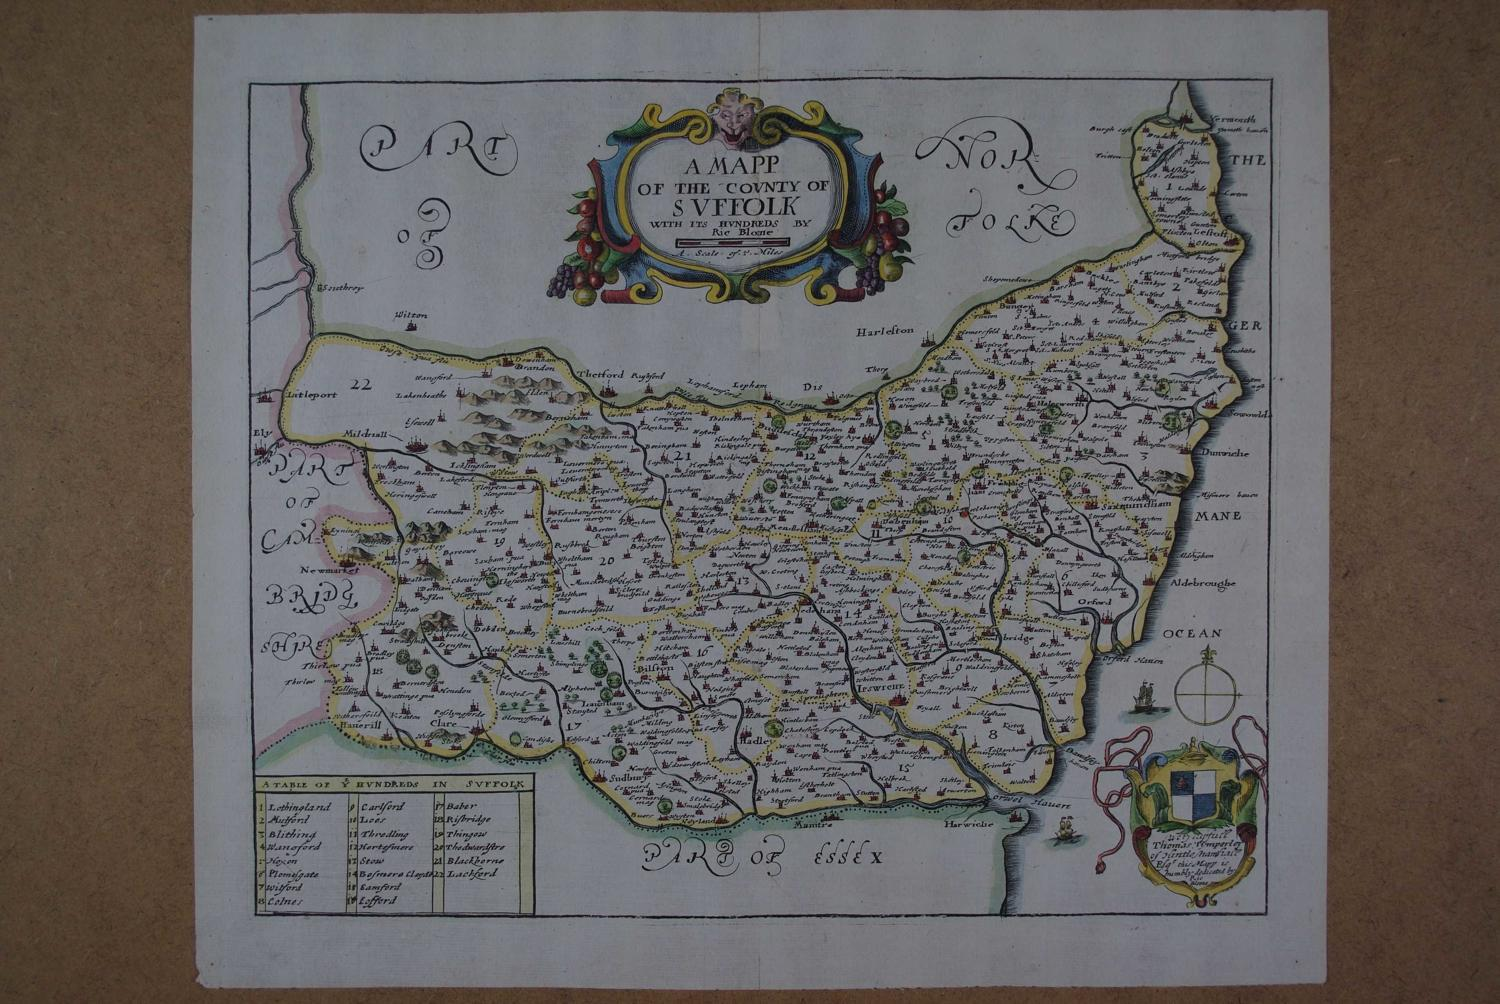 A Mapp of the County of Suffolk by Richard Blome